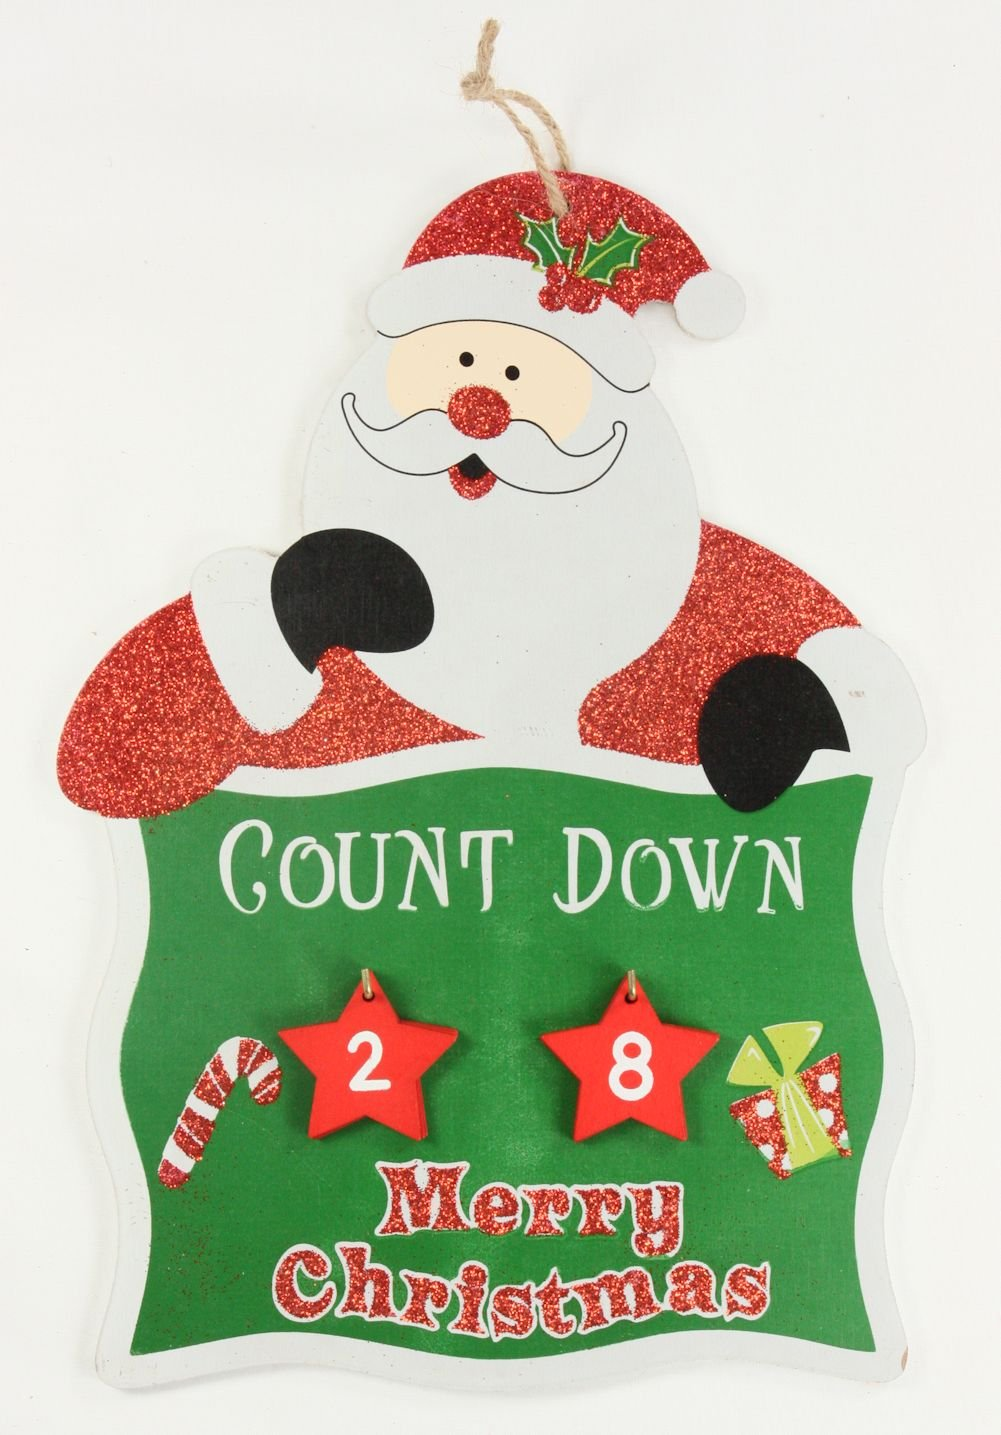 Countdown to Christmas Hanging Wall Plaque With Hanging Numbers